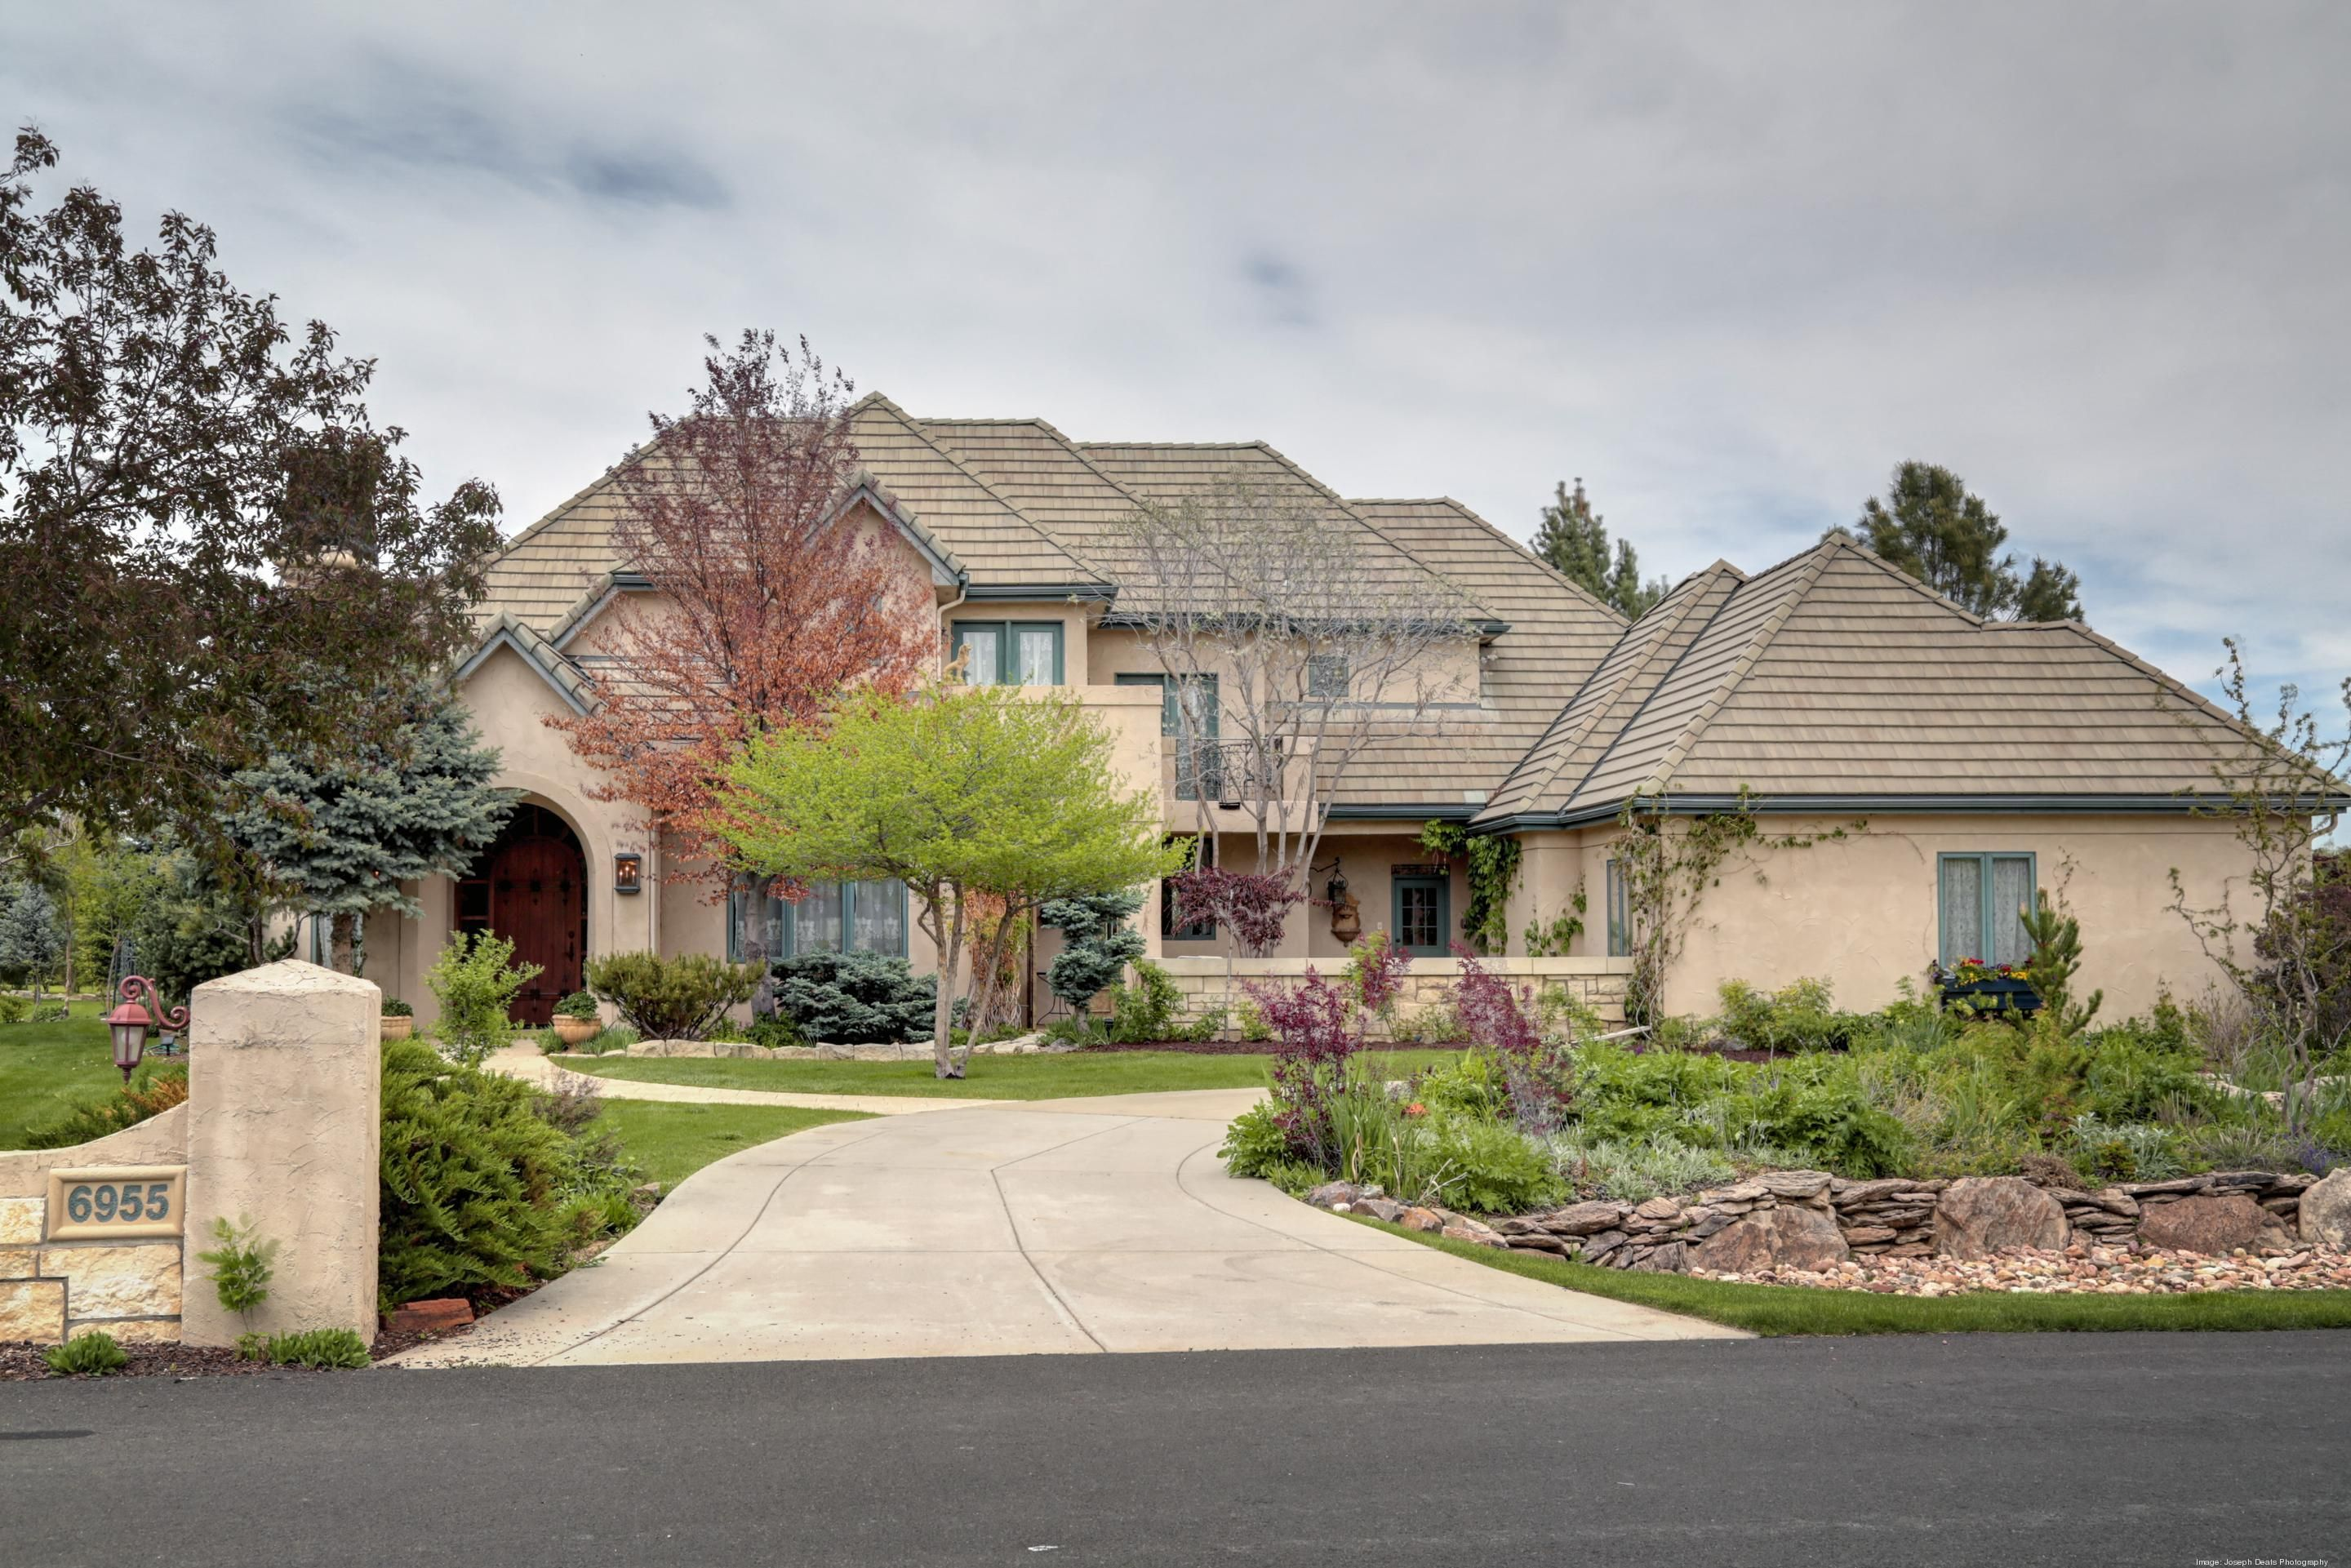 Dream Home And Gardens In Littletonu0027s Polo Reserve   Denver   Home Of The  Day